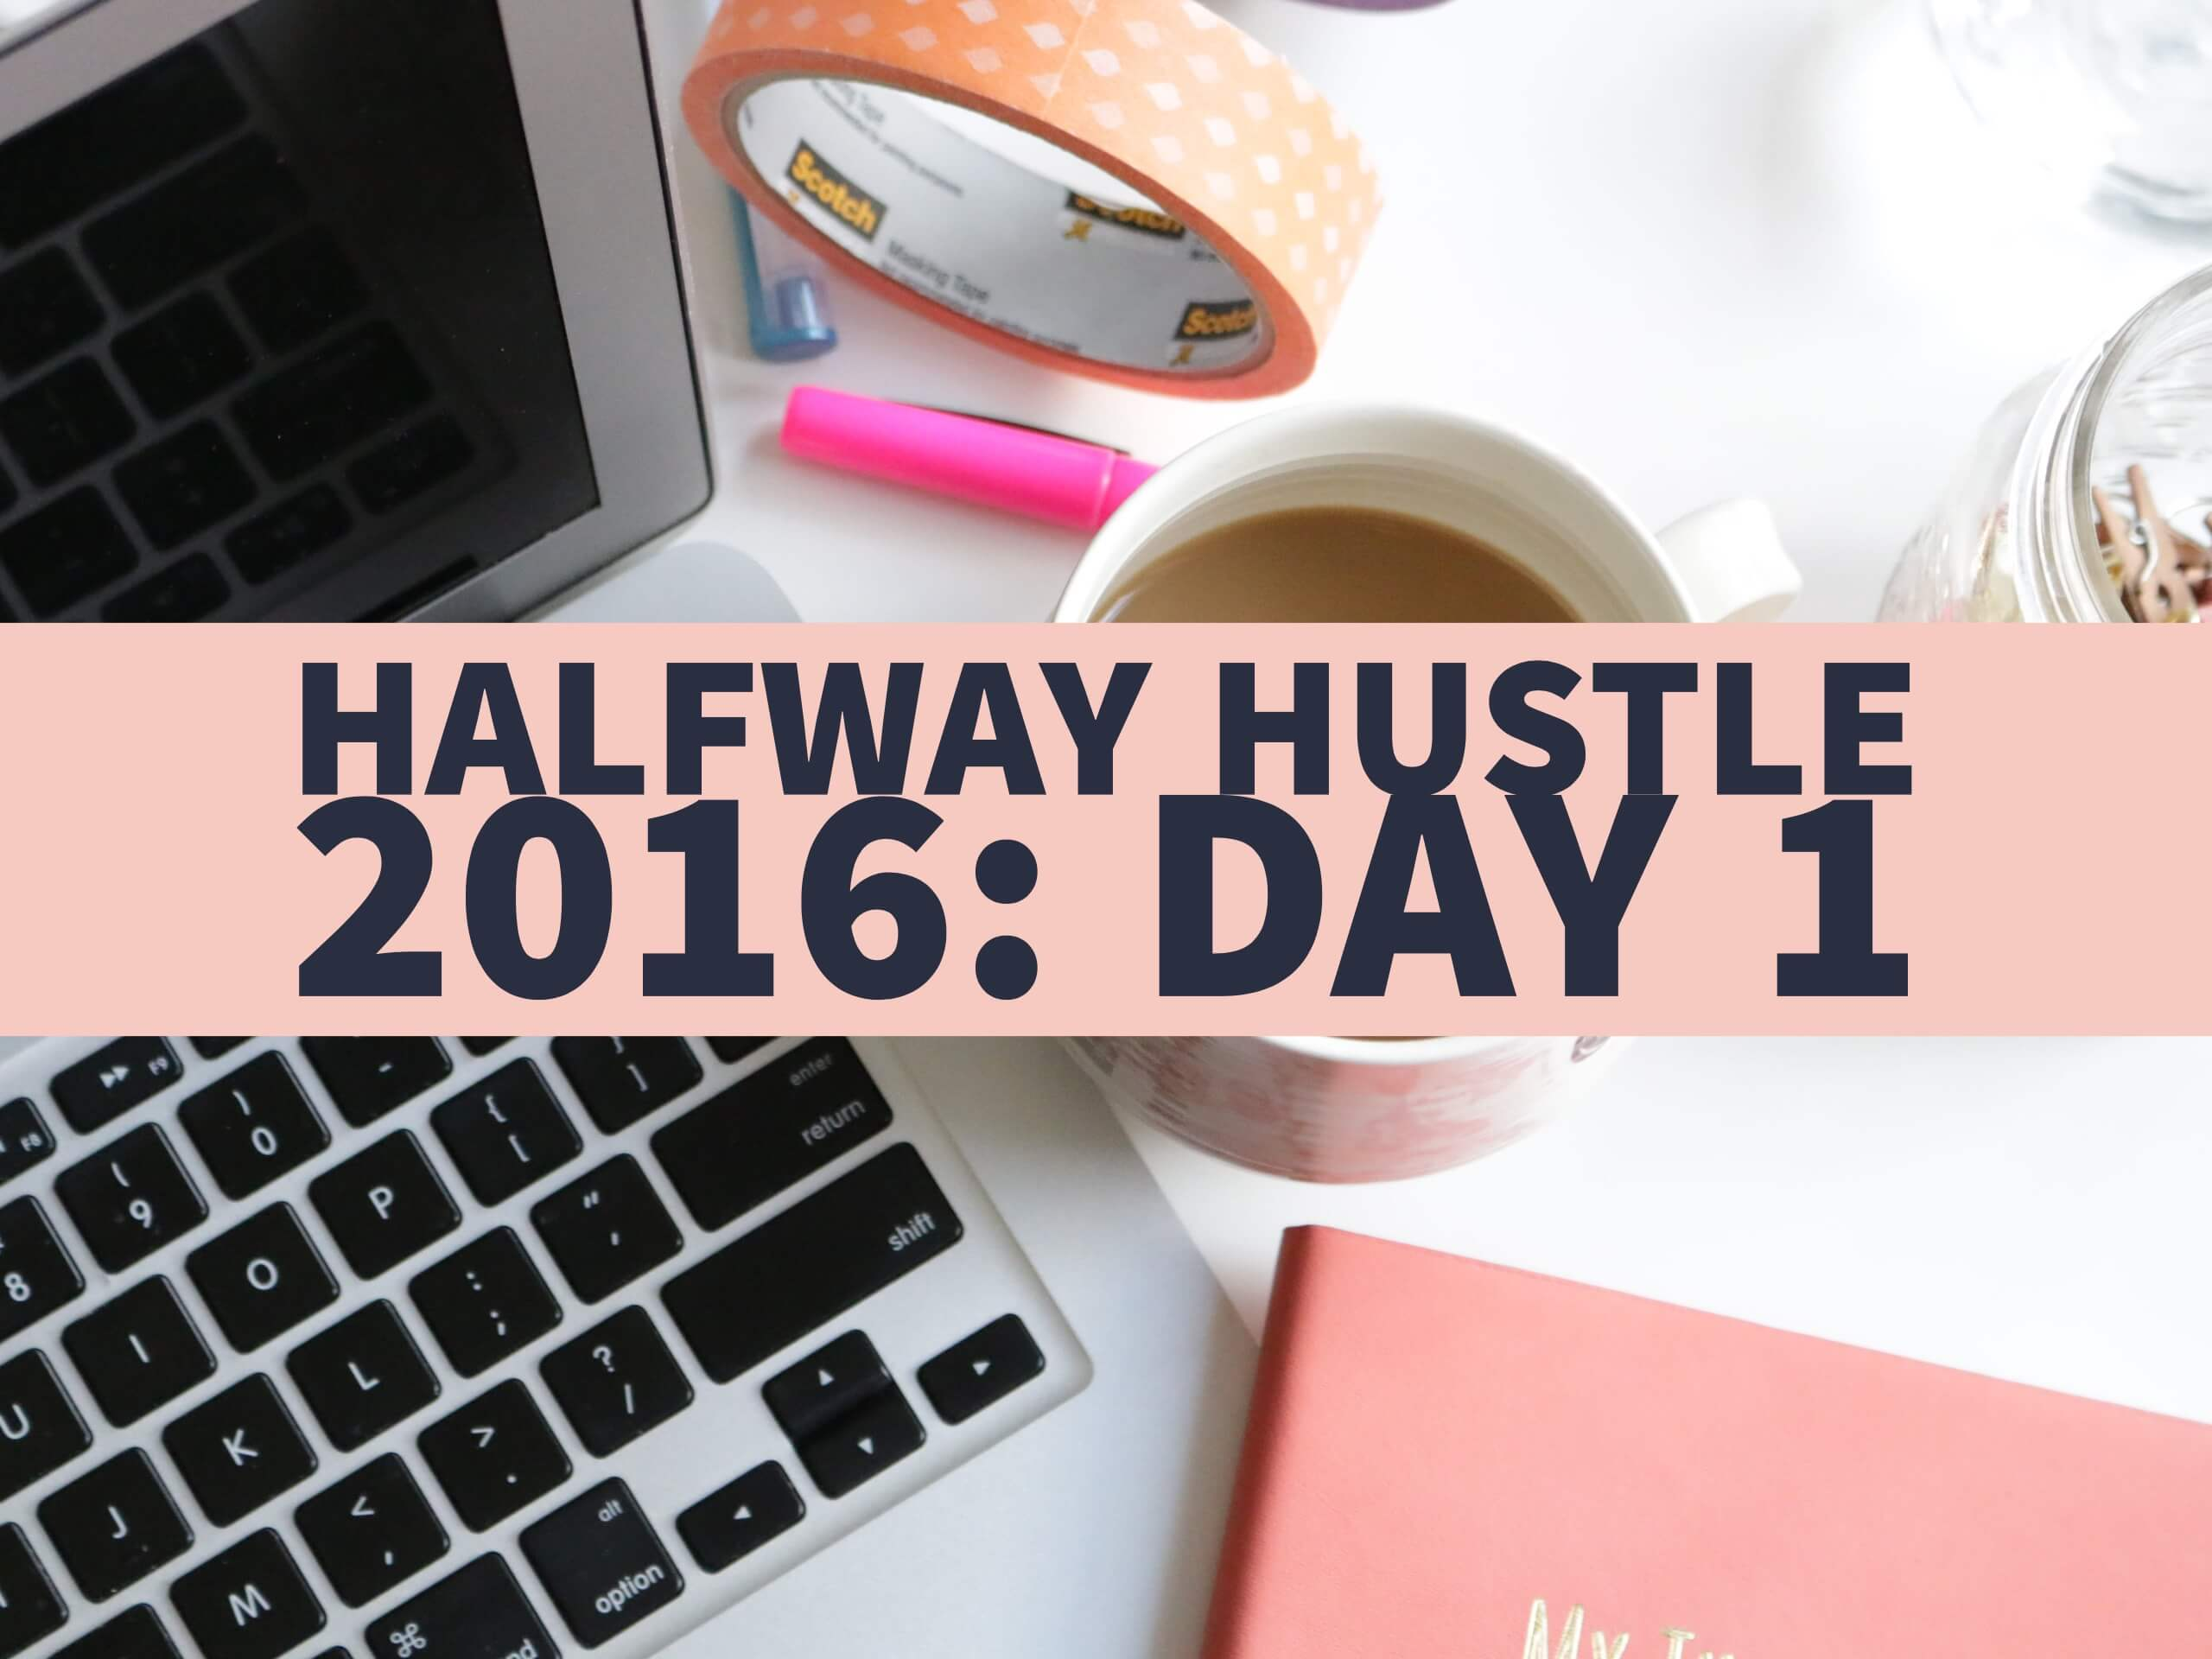 Halfway Hustle 2016 Day 1: Review the Past 6 Months